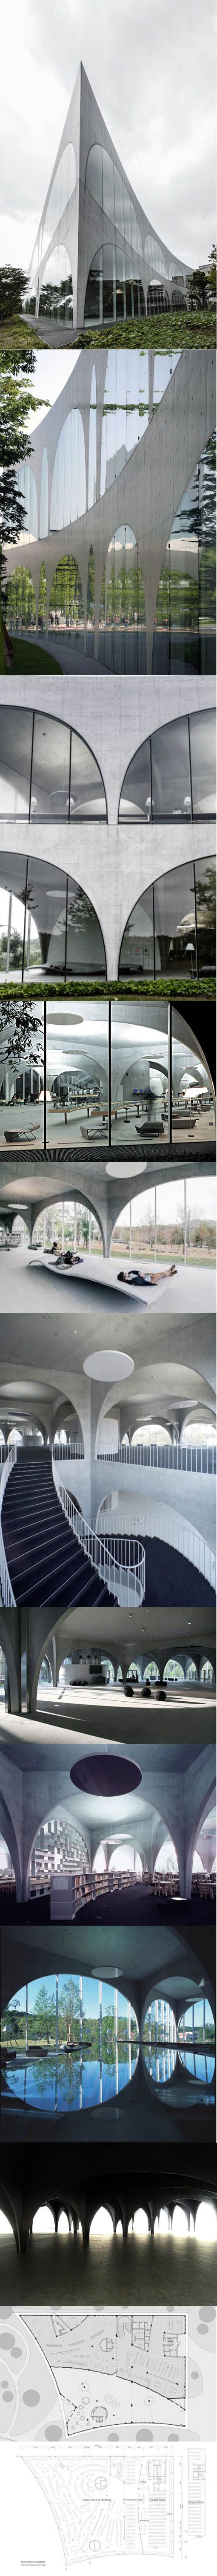 2007 Toyo Ito - Library at Tama Art University / Tokyo Japan / concrete / glass